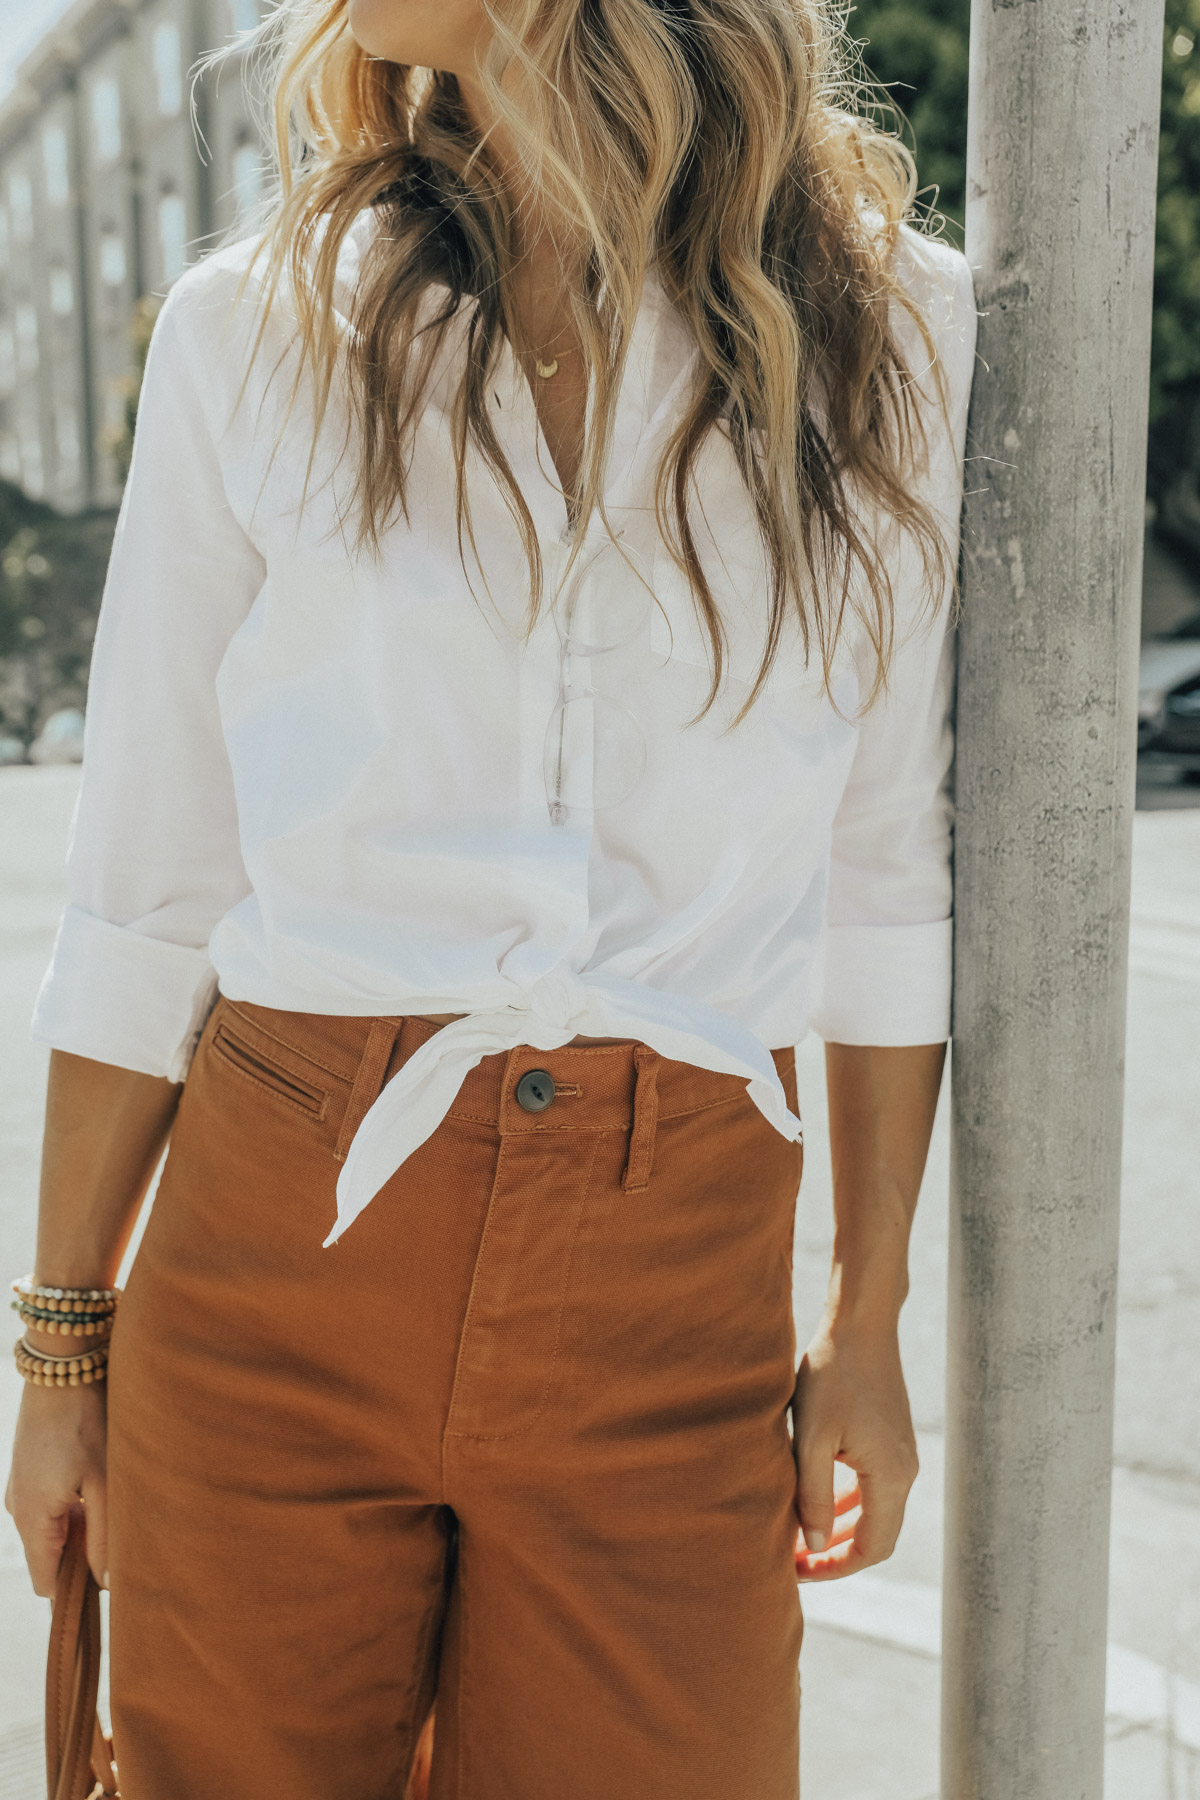 madewell outfit wide leg crop jeans and tie front top